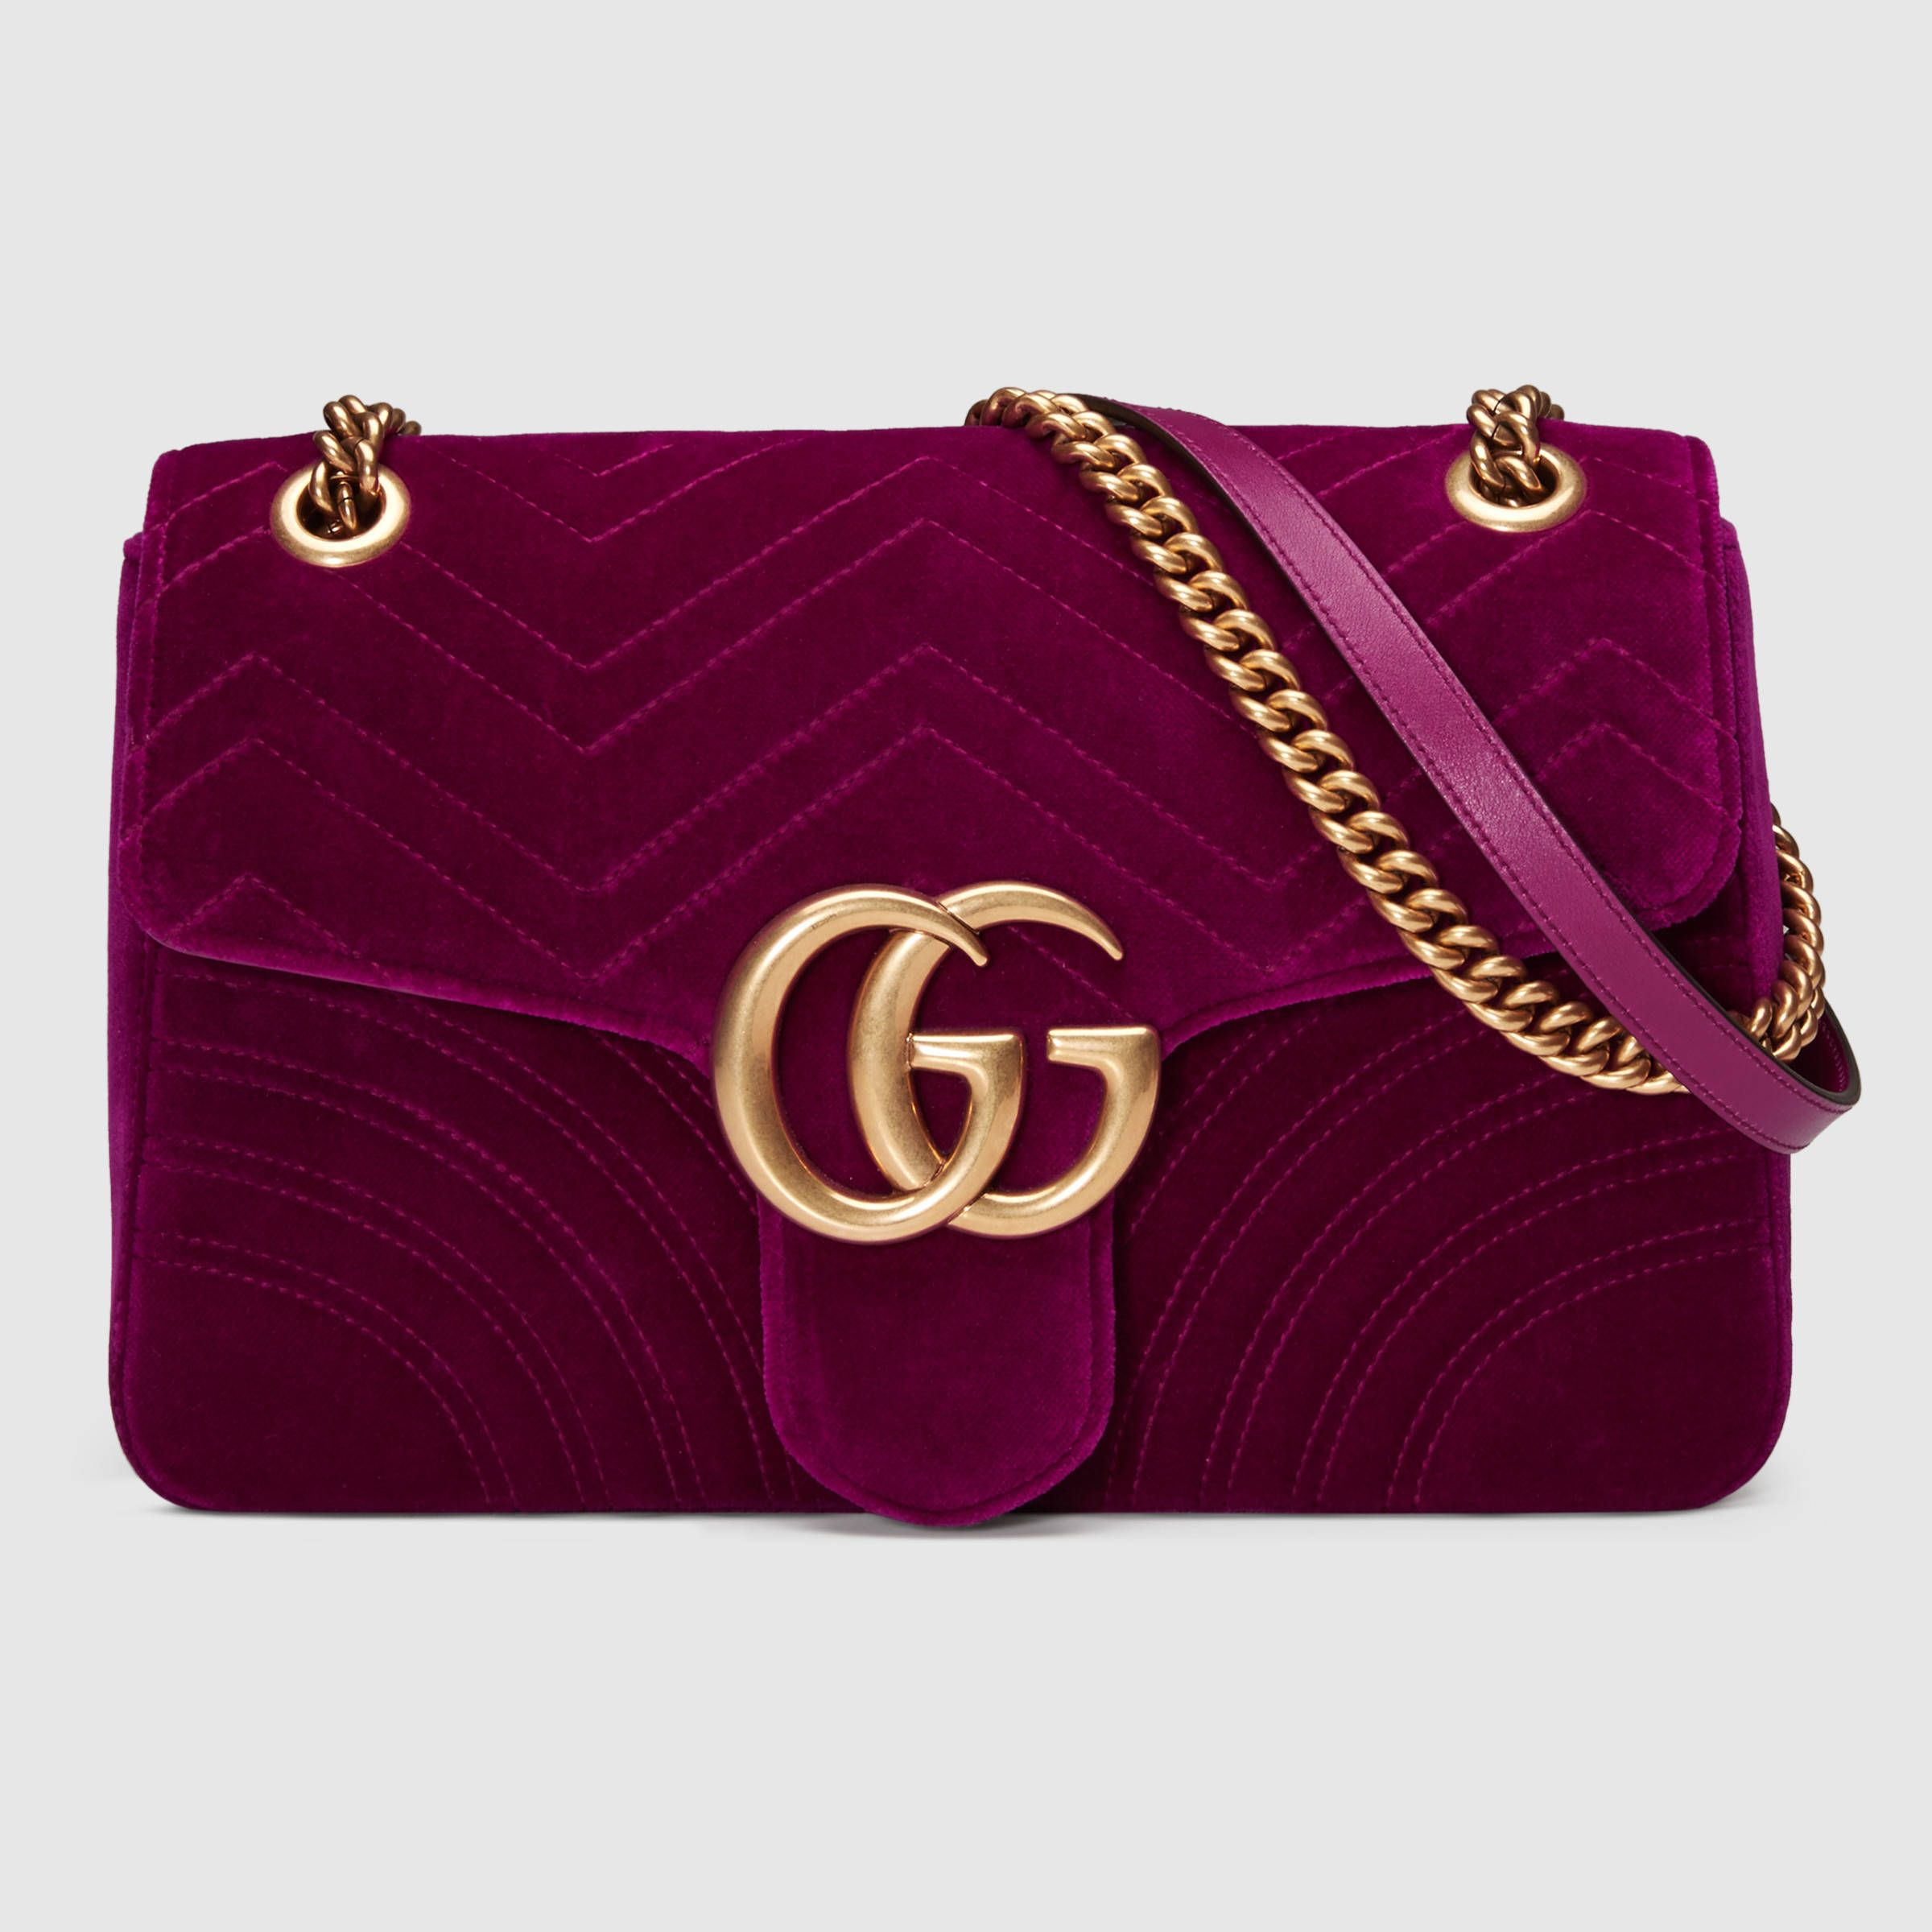 Gucci Women - GG Marmont velvet shoulder bag - 443496K4D2T5671 ... 730a2f469c16